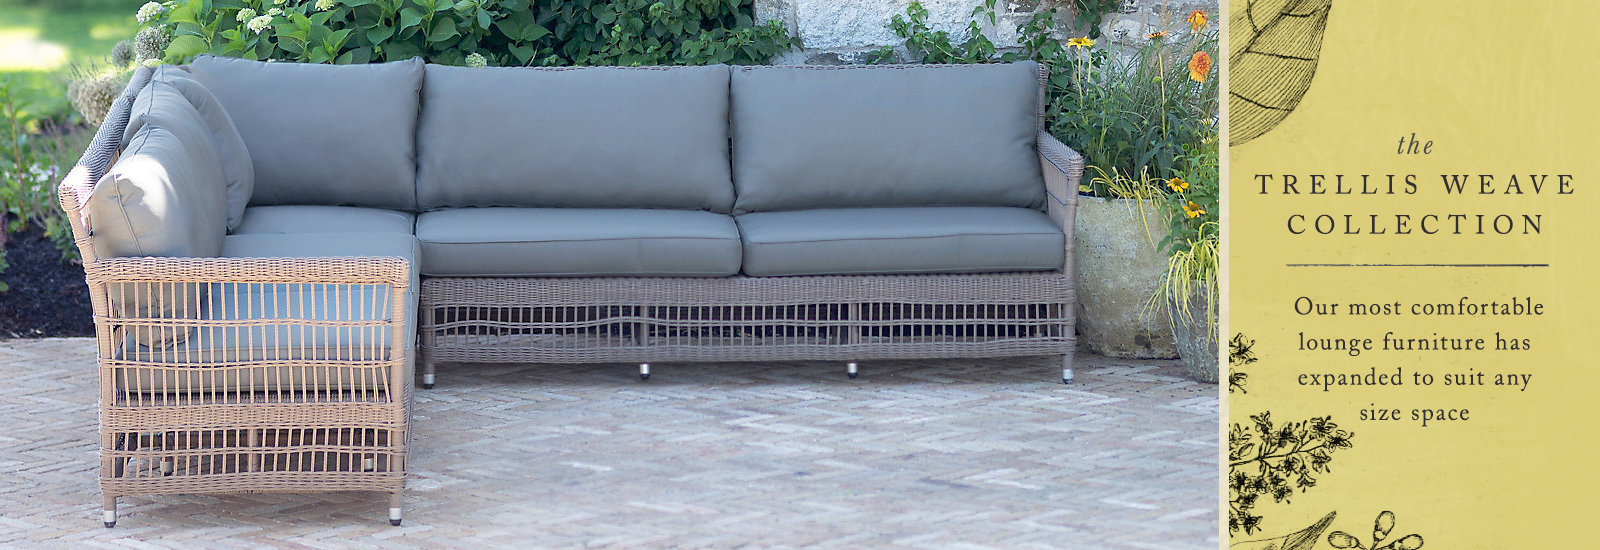 The Trellis Weave Collection | our most comfortable lounge furniture